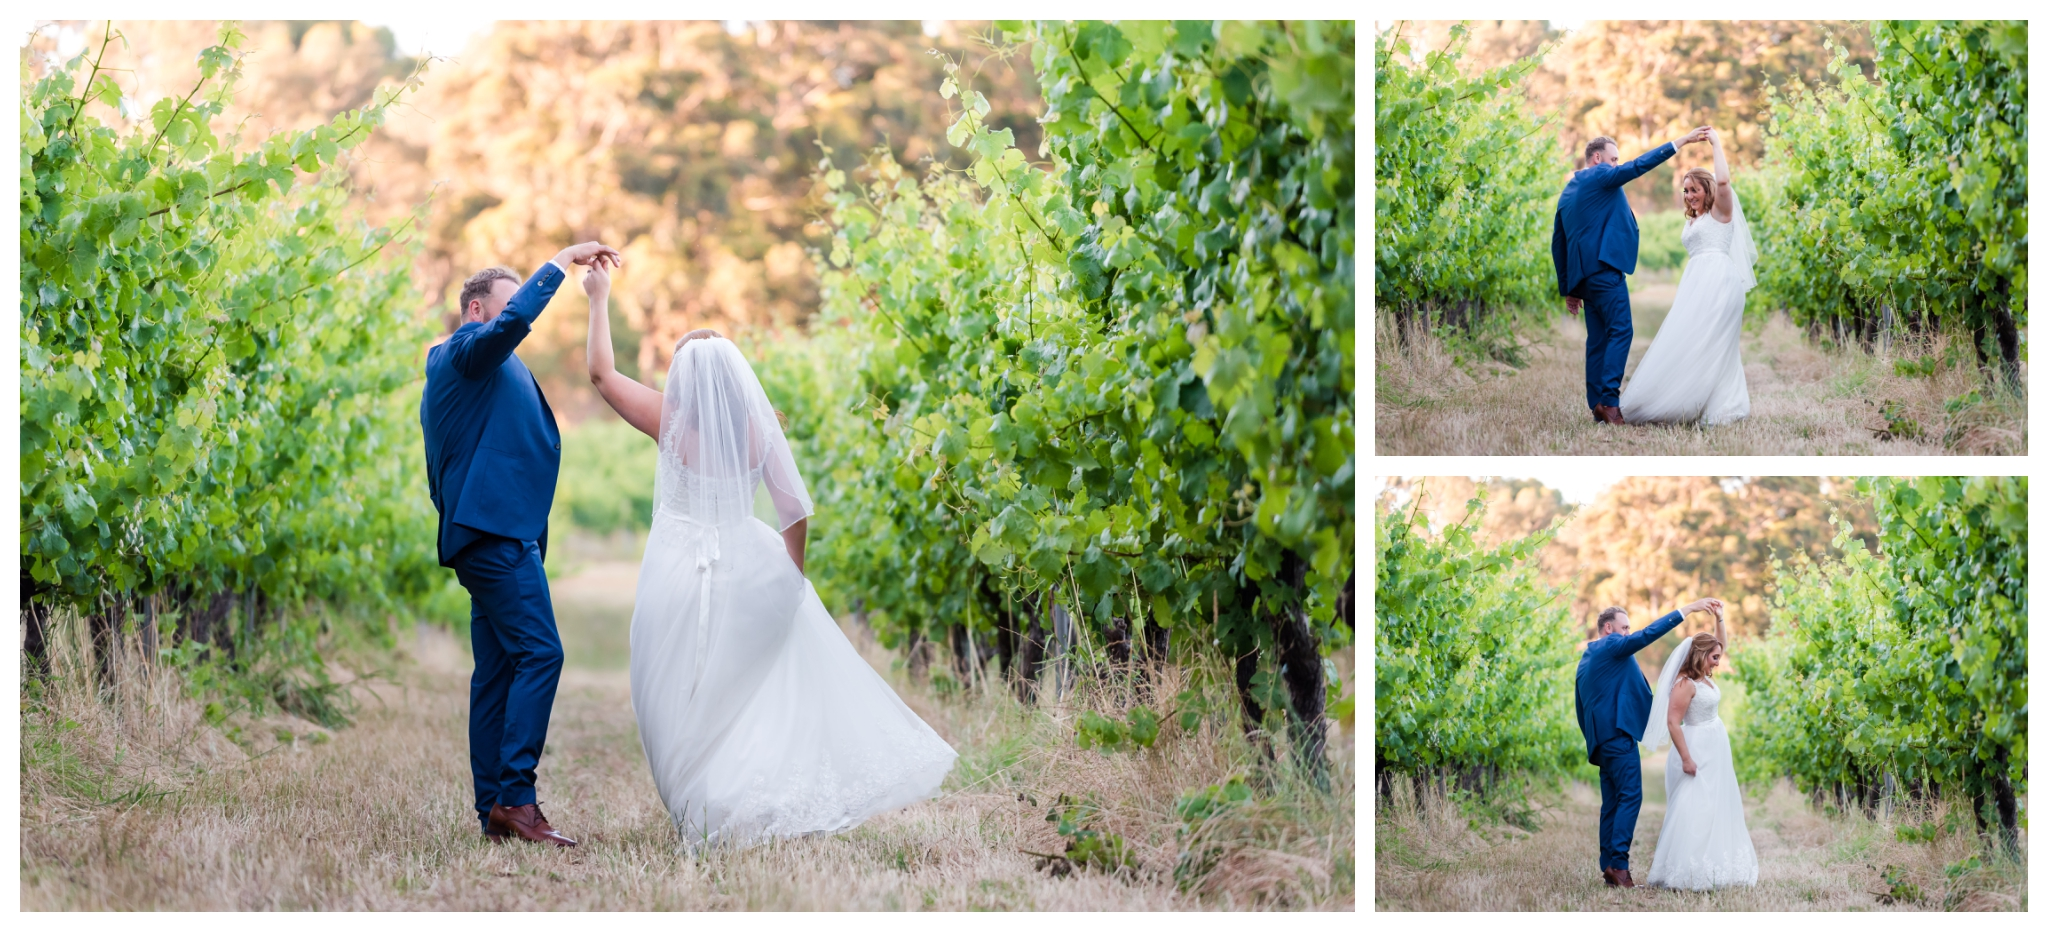 Bride and Groom Aravina Estate Wedding